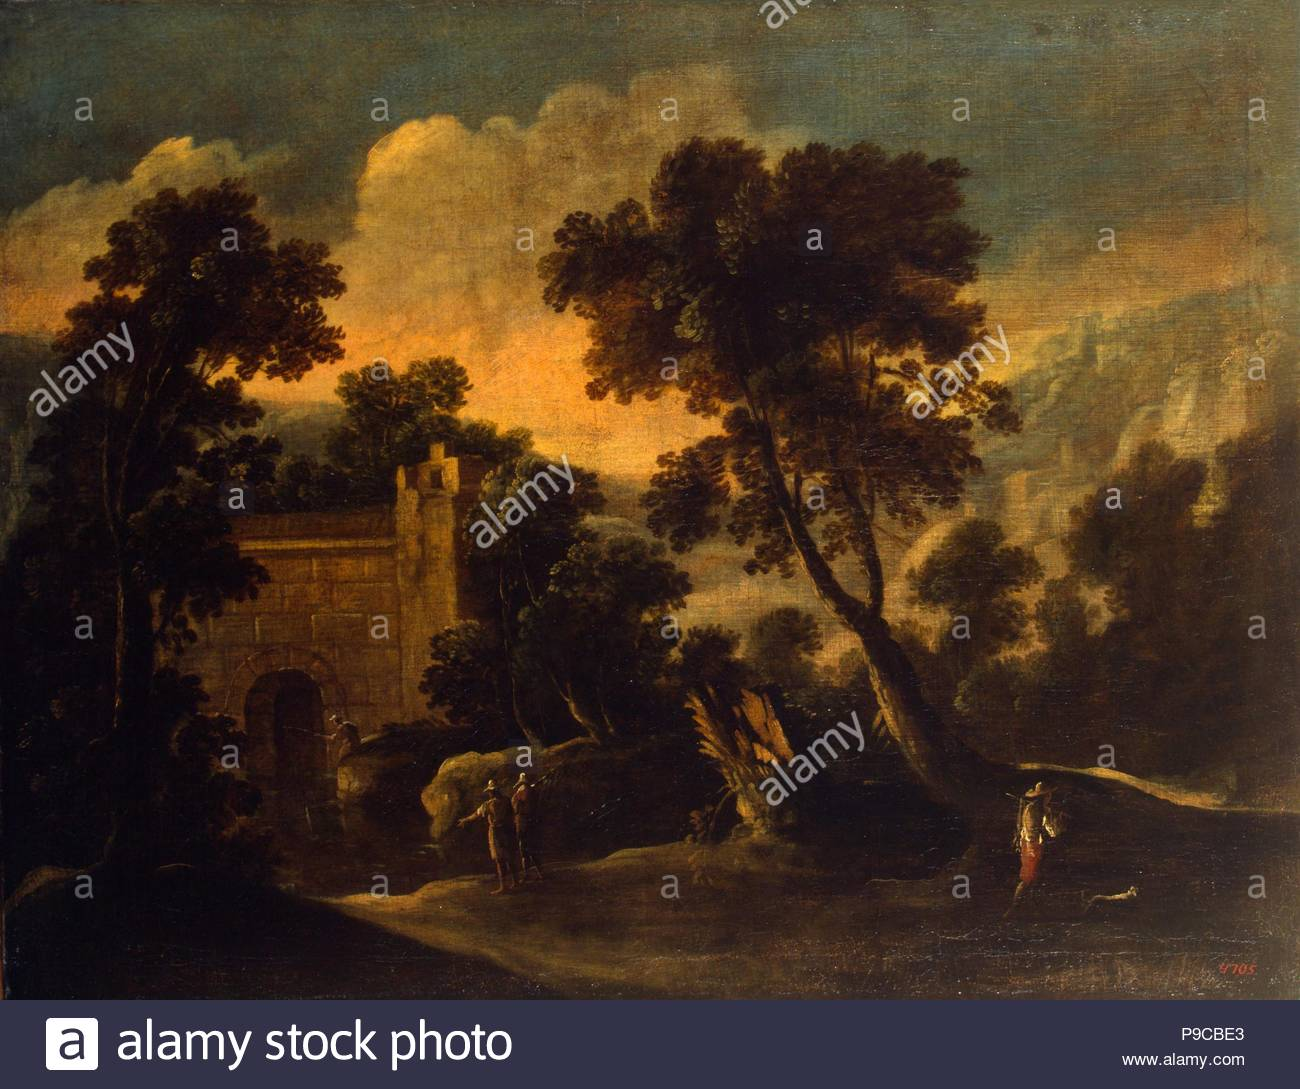 Landscape with Ruins. Museum: State Hermitage, St. Petersburg. - Stock Image